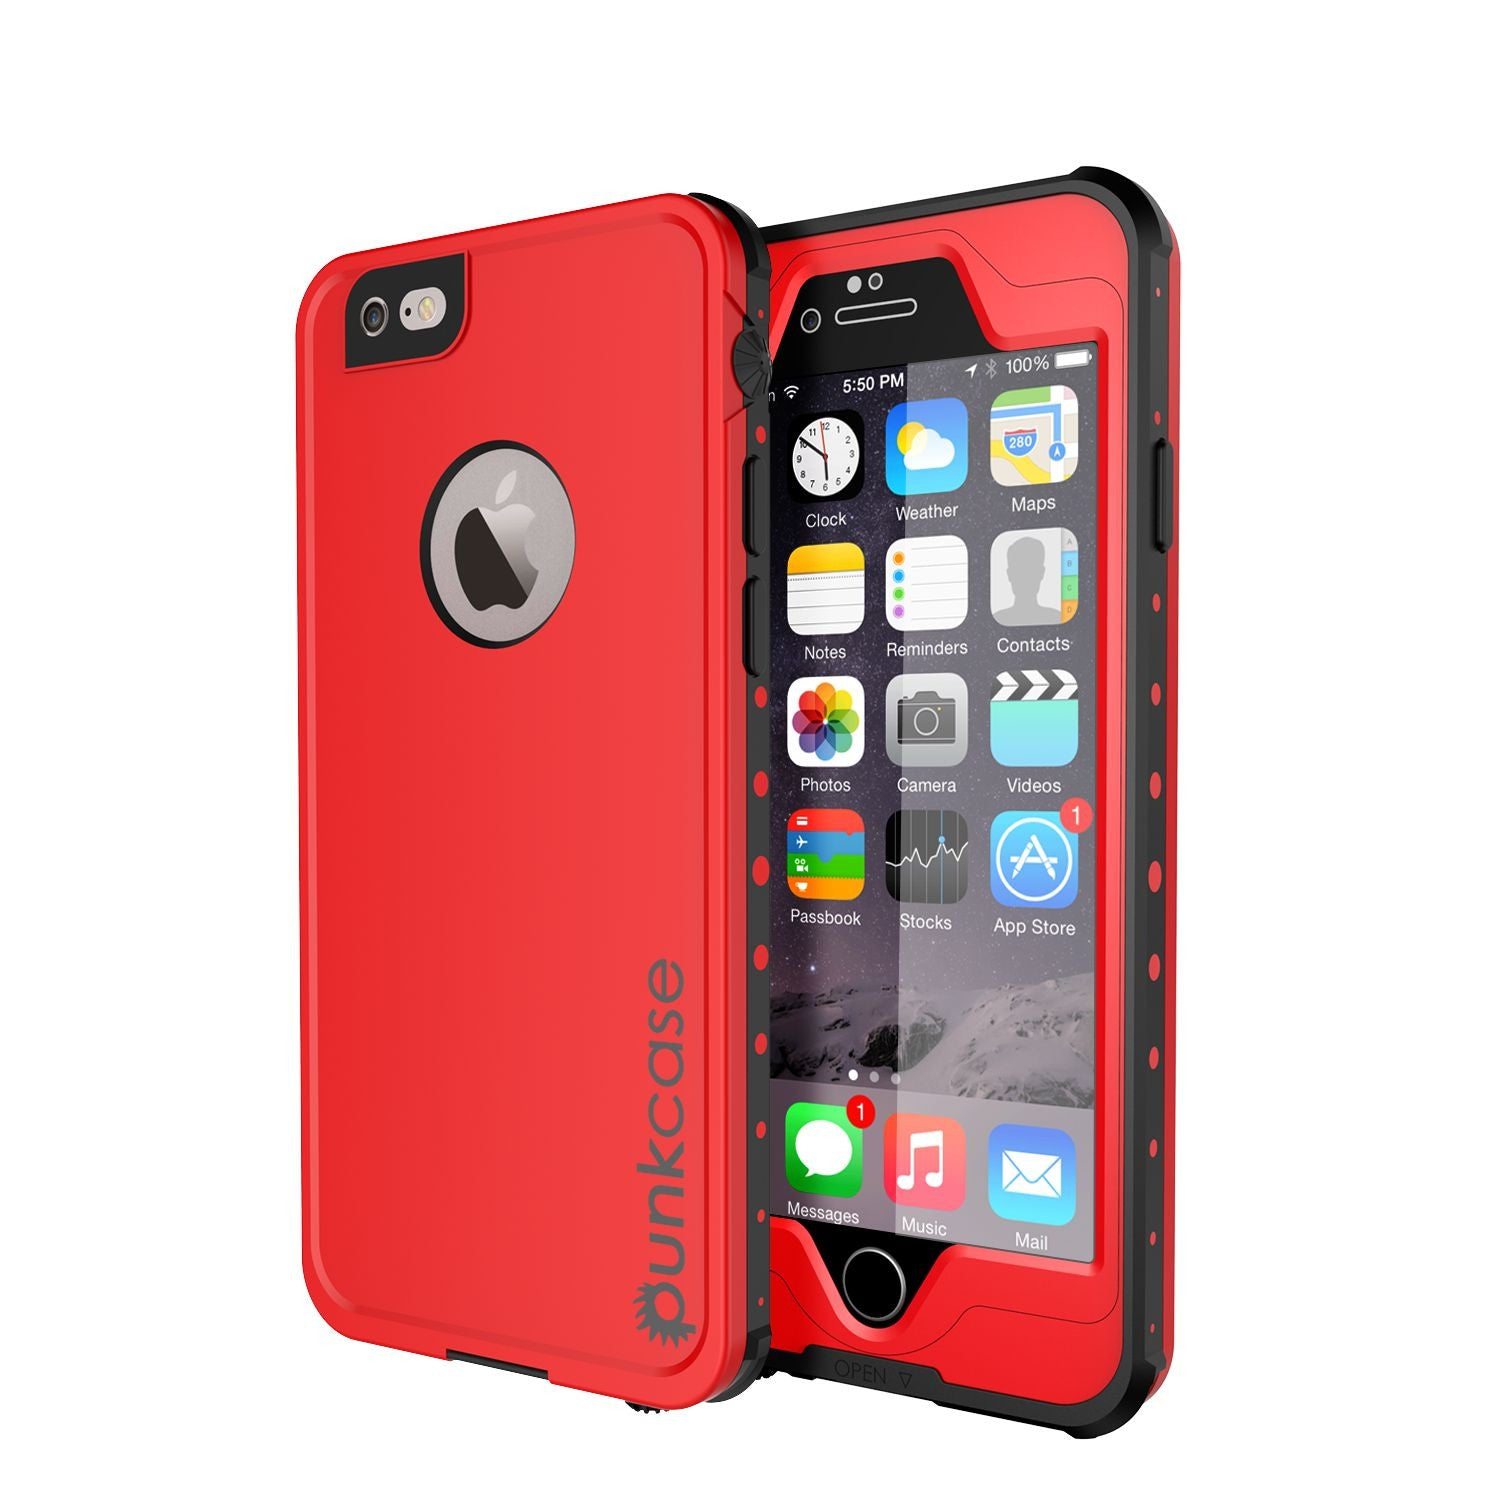 iPhone 6S+/6+ Plus Waterproof Case, PUNKcase StudStar Red w/ Attached Screen Protector | Warranty